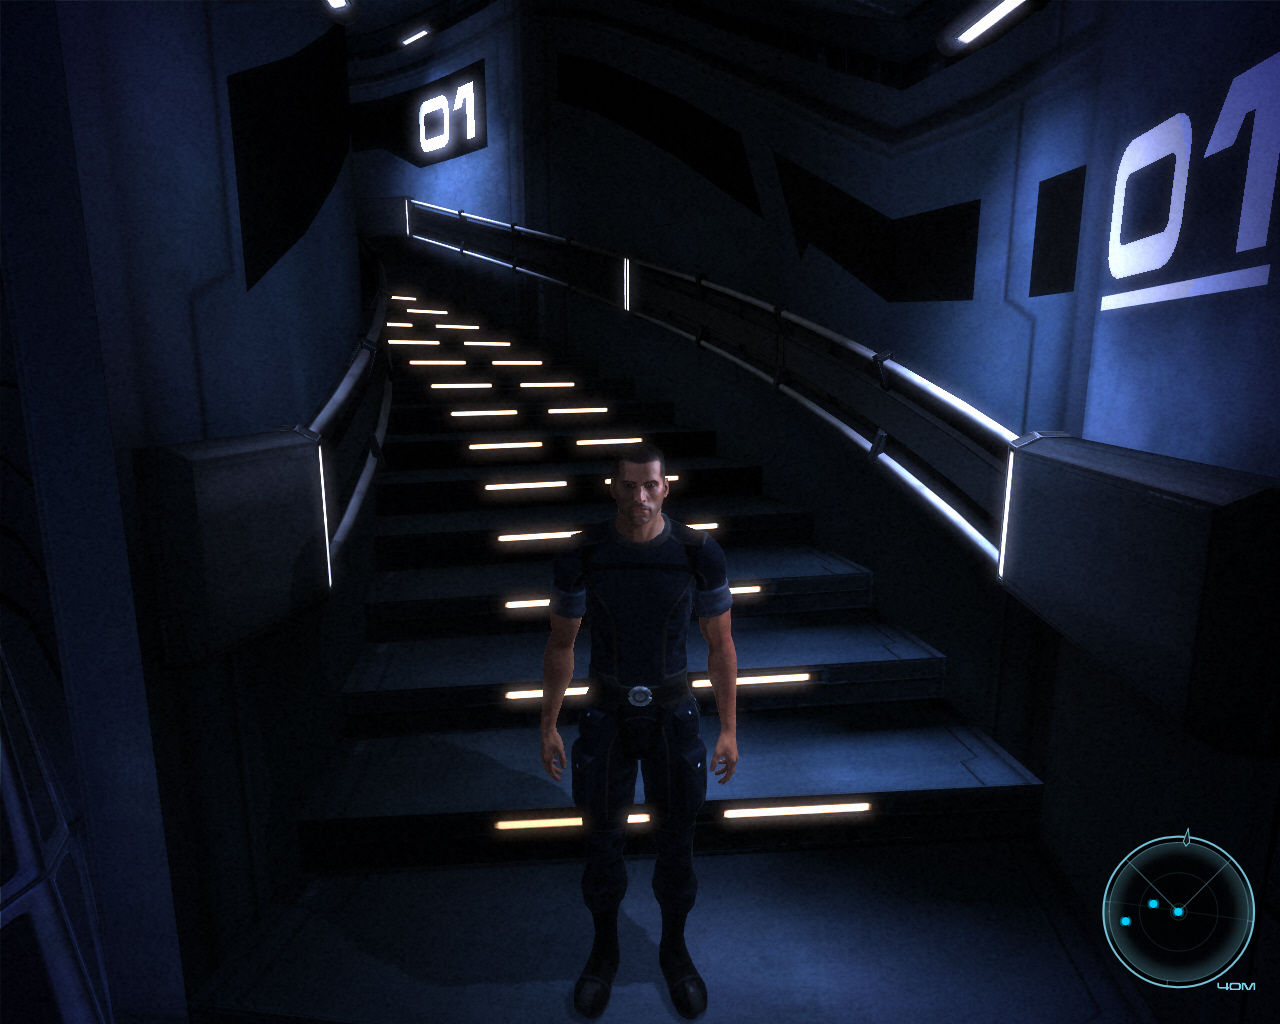 Mass Effect Windows Stairs to deck 01